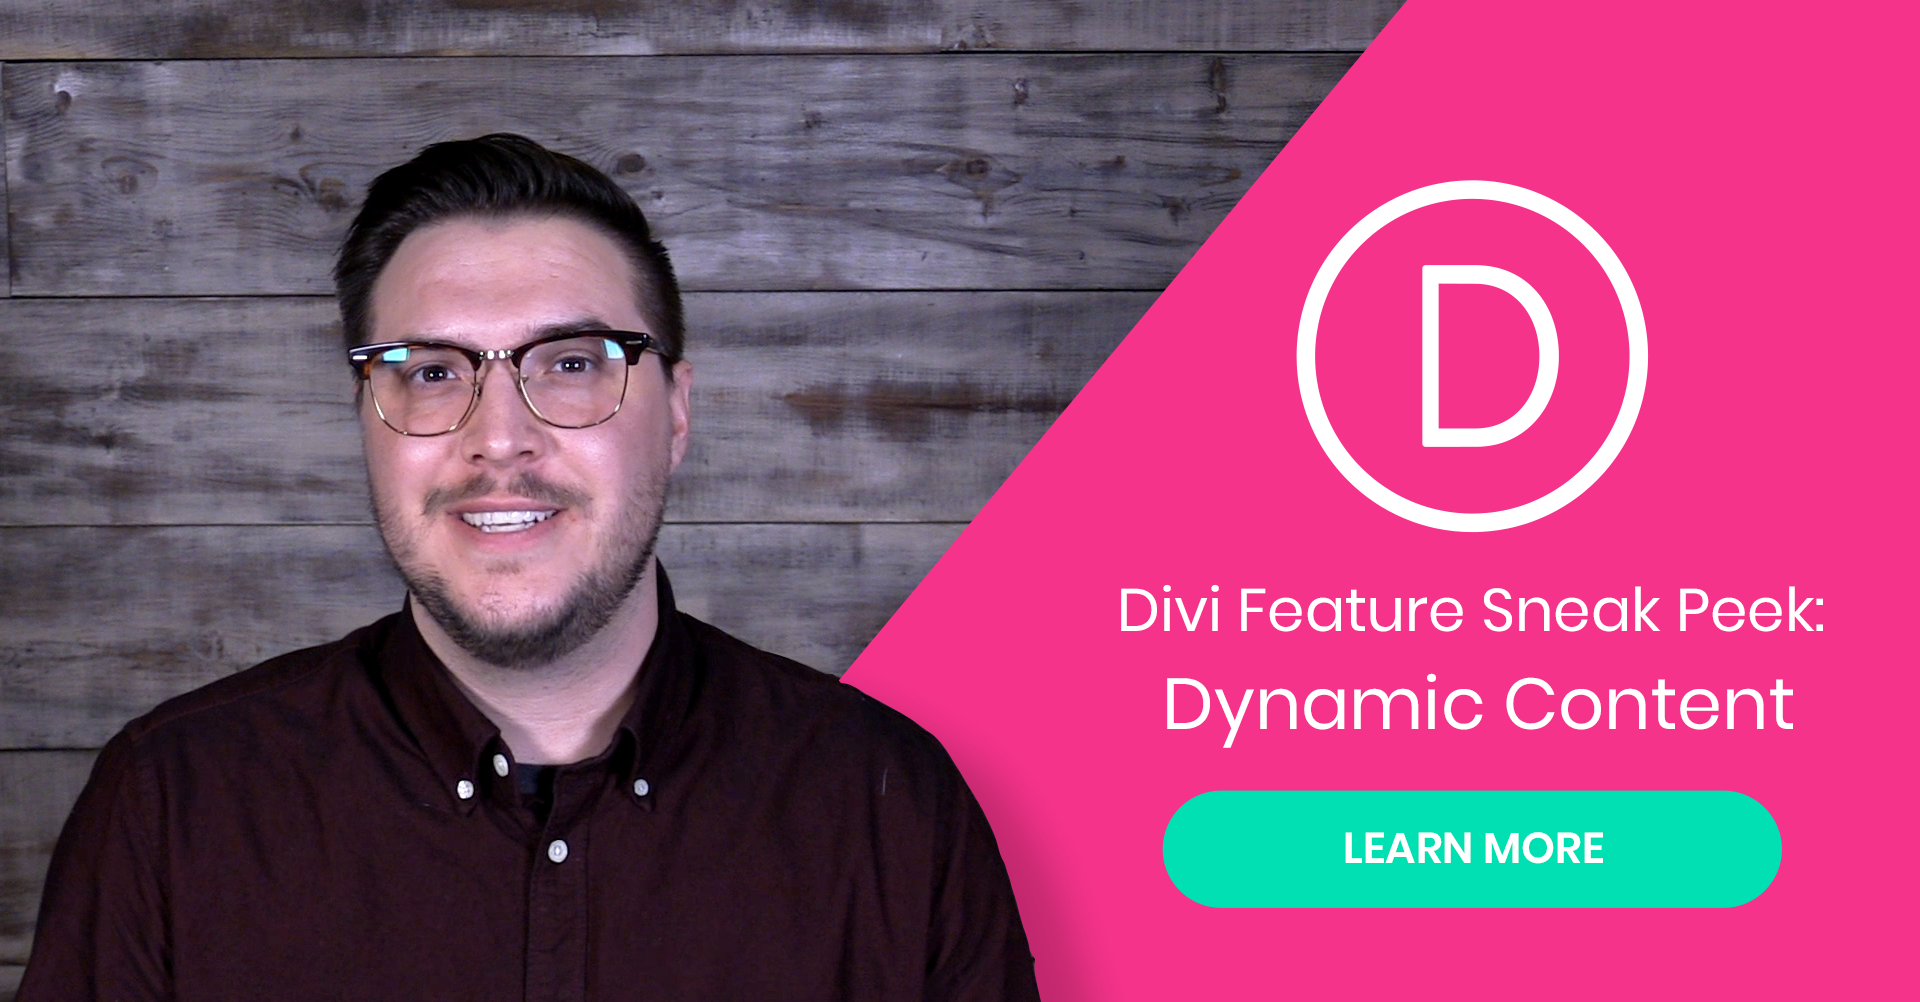 Divi Feature Sneak Peek: Dynamic Content